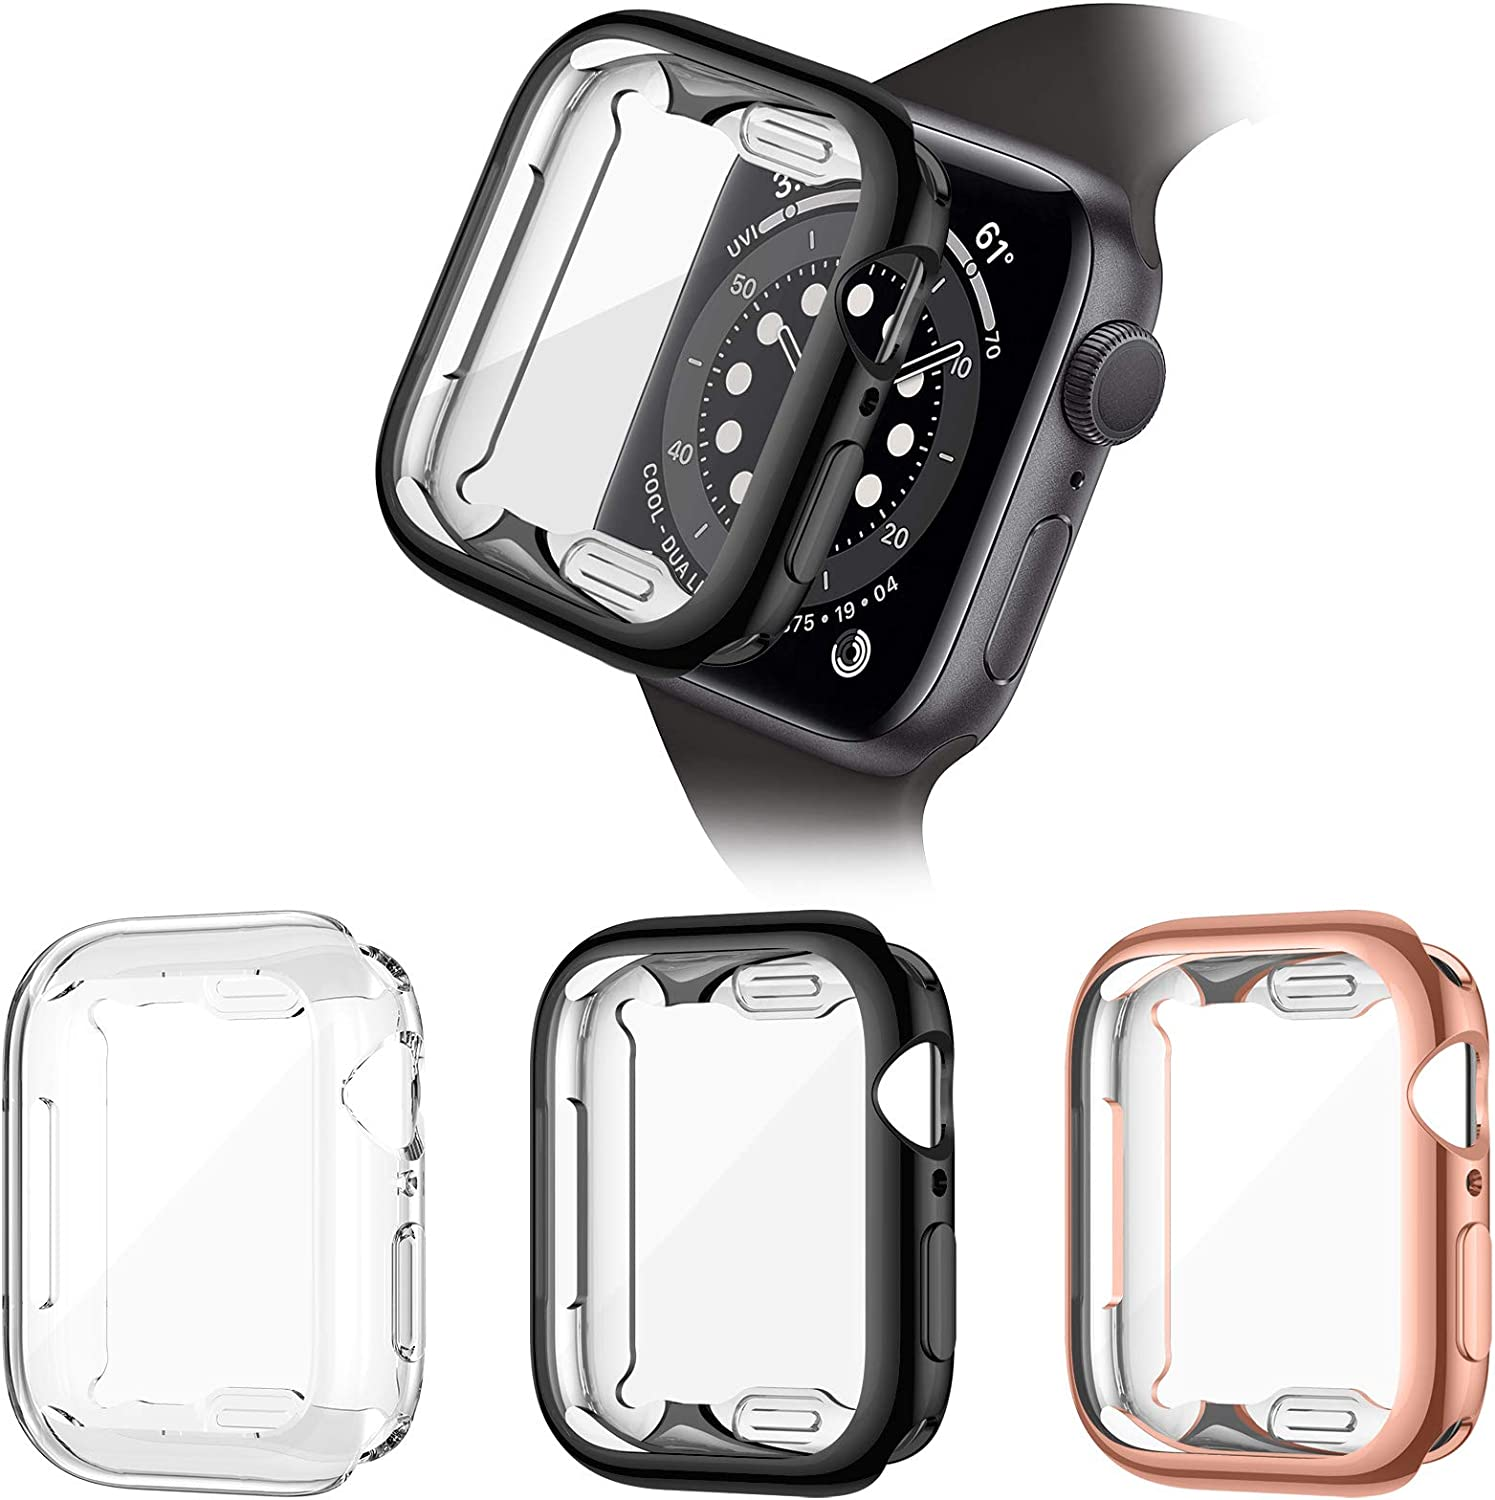 ZEBRE 3 Pack Screen Protector Compatible with Apple Watch SE/Series 6 / Series 5 / Series 4 44mm, Soft TPU Full Coverage Protective Case Cover Compatible with iWatch Series SE/6/5/4